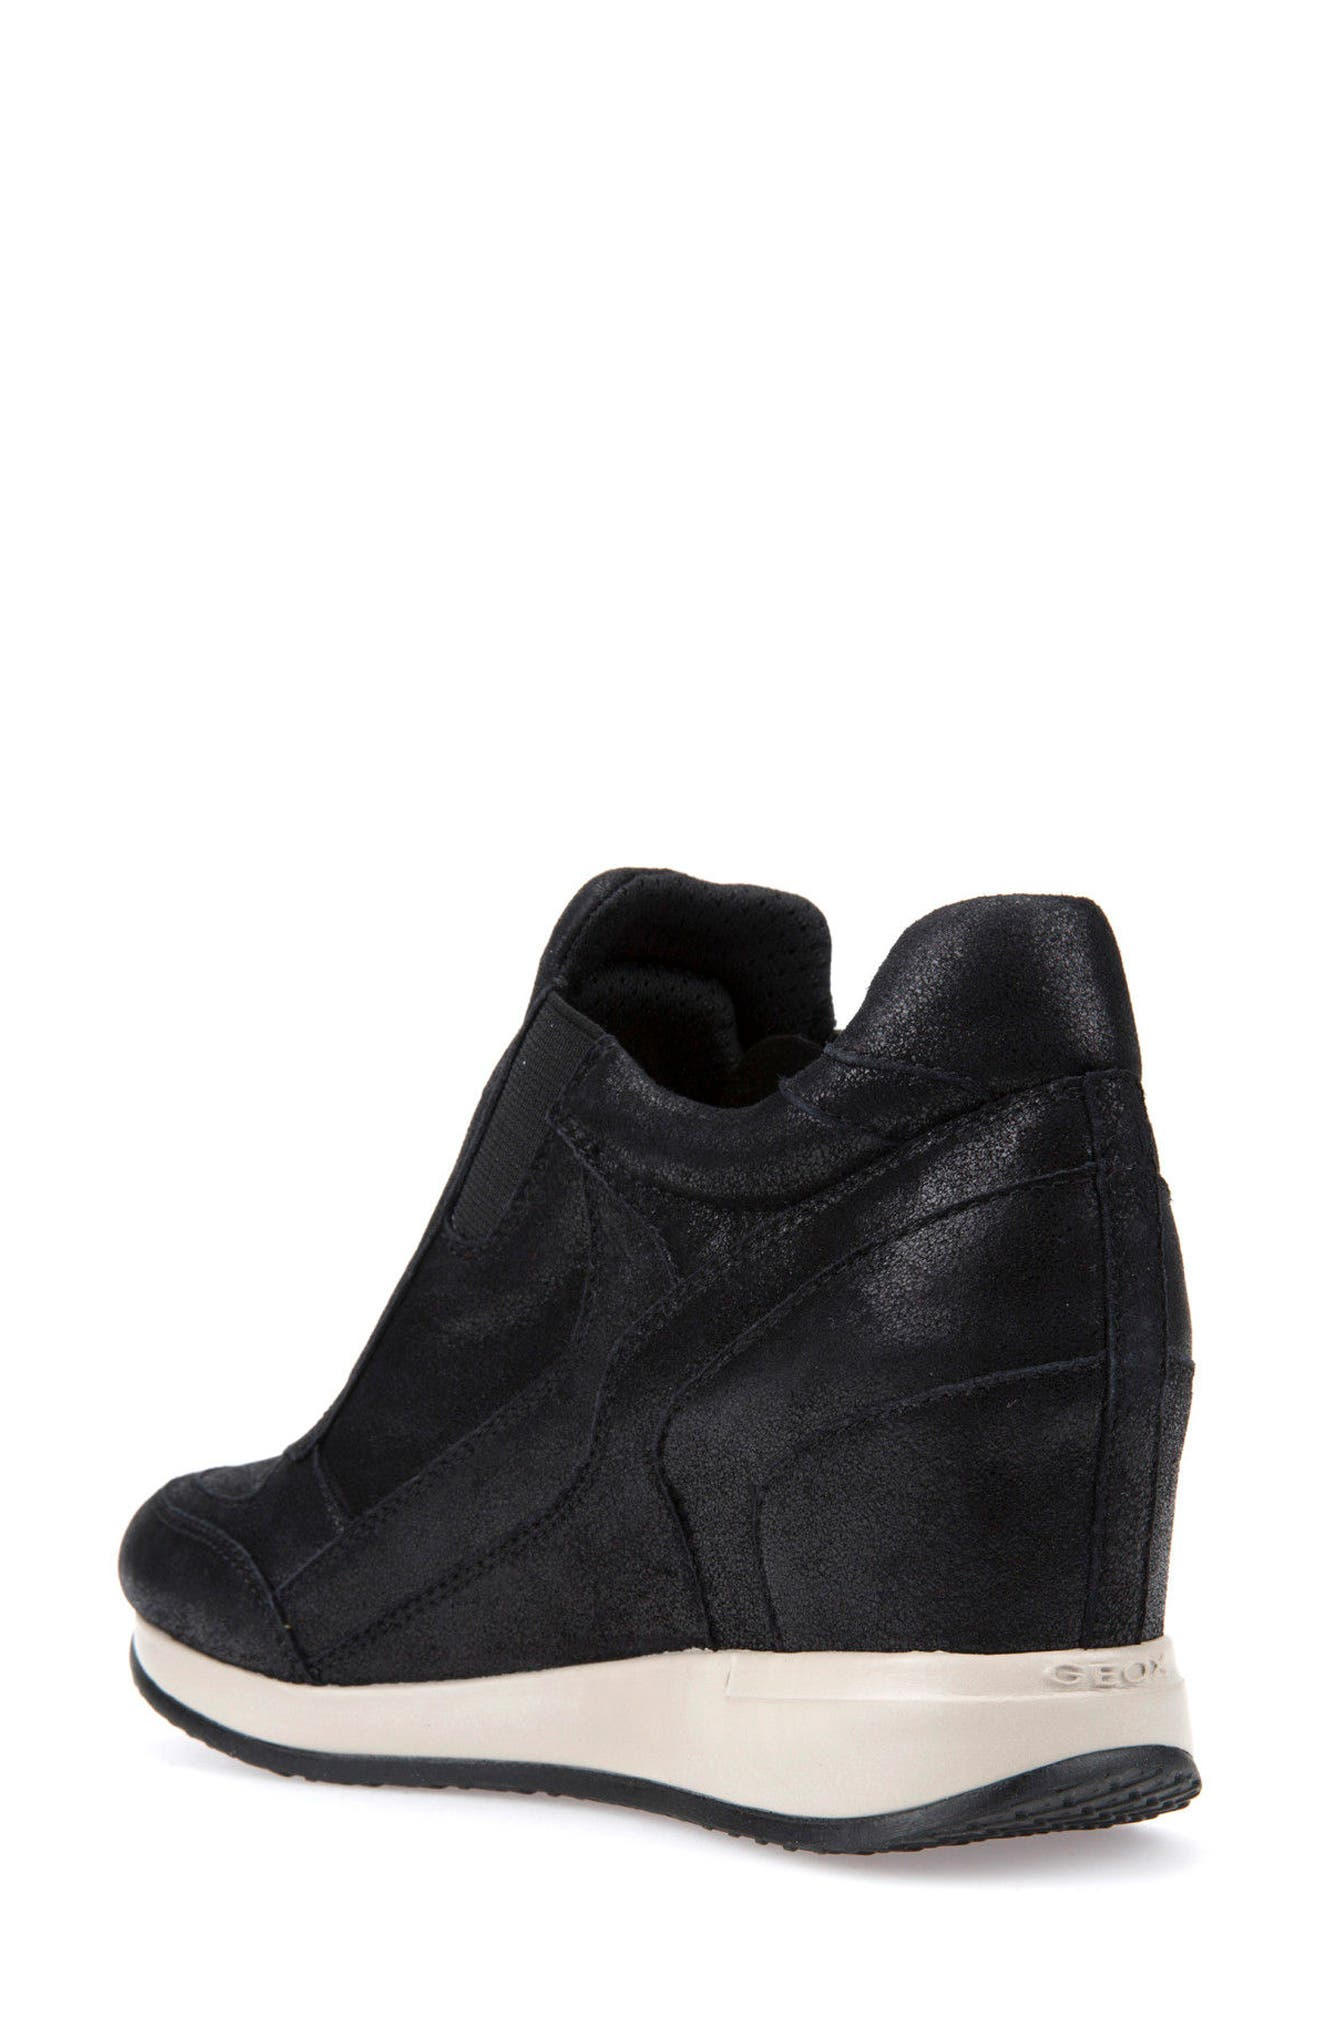 Nydame Wedge Sneaker,                             Alternate thumbnail 2, color,                             001